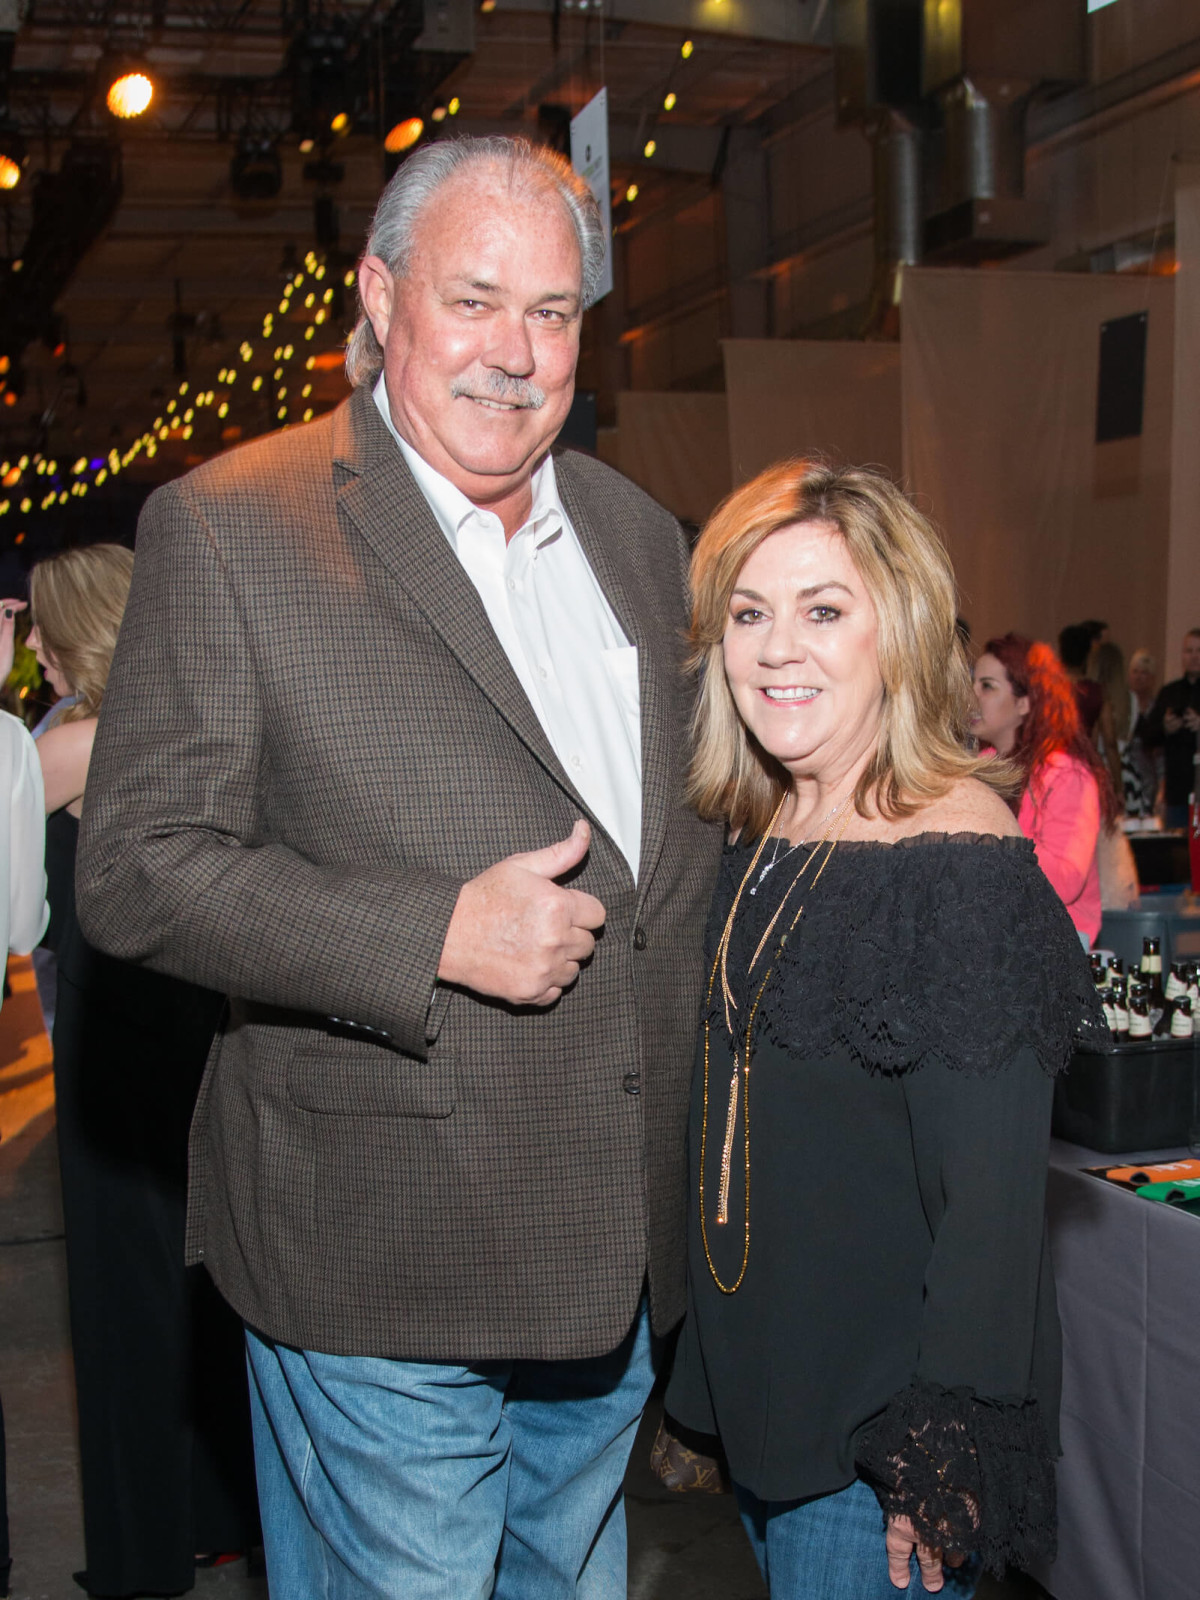 Carl Mitchell, Robin Mitchell at Big Texas Party